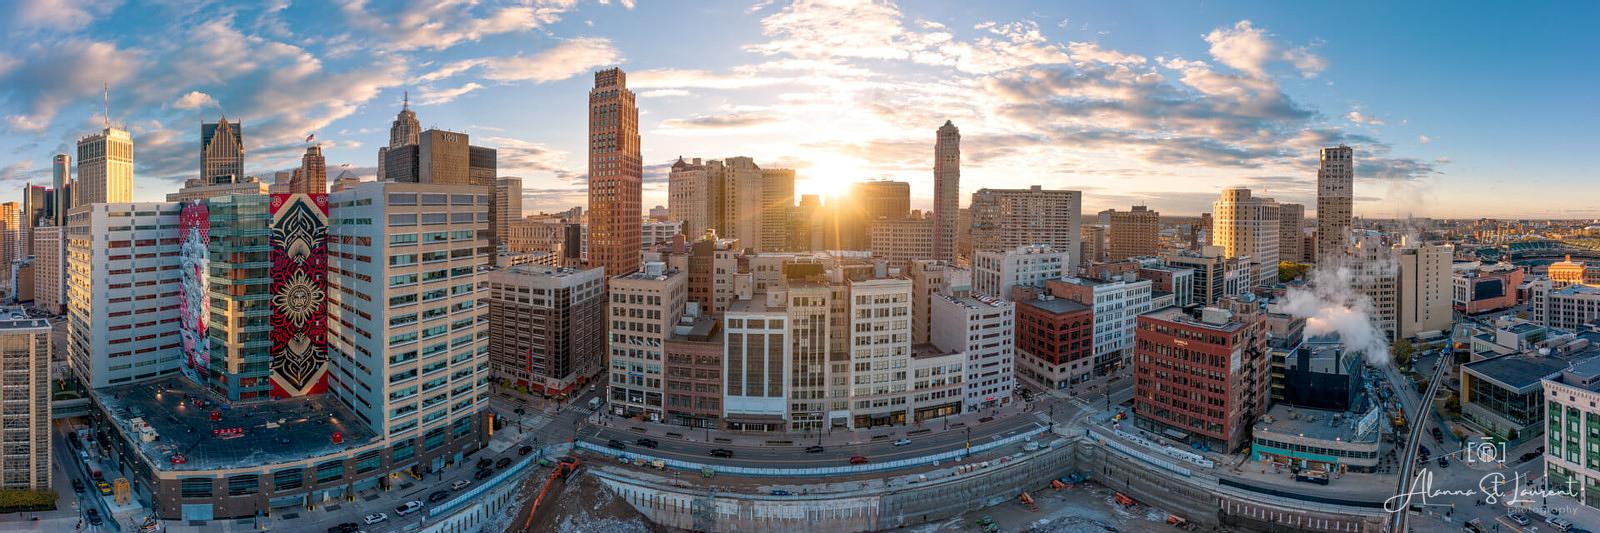 Detroit_Skyline_180_Pano_Z_Garage